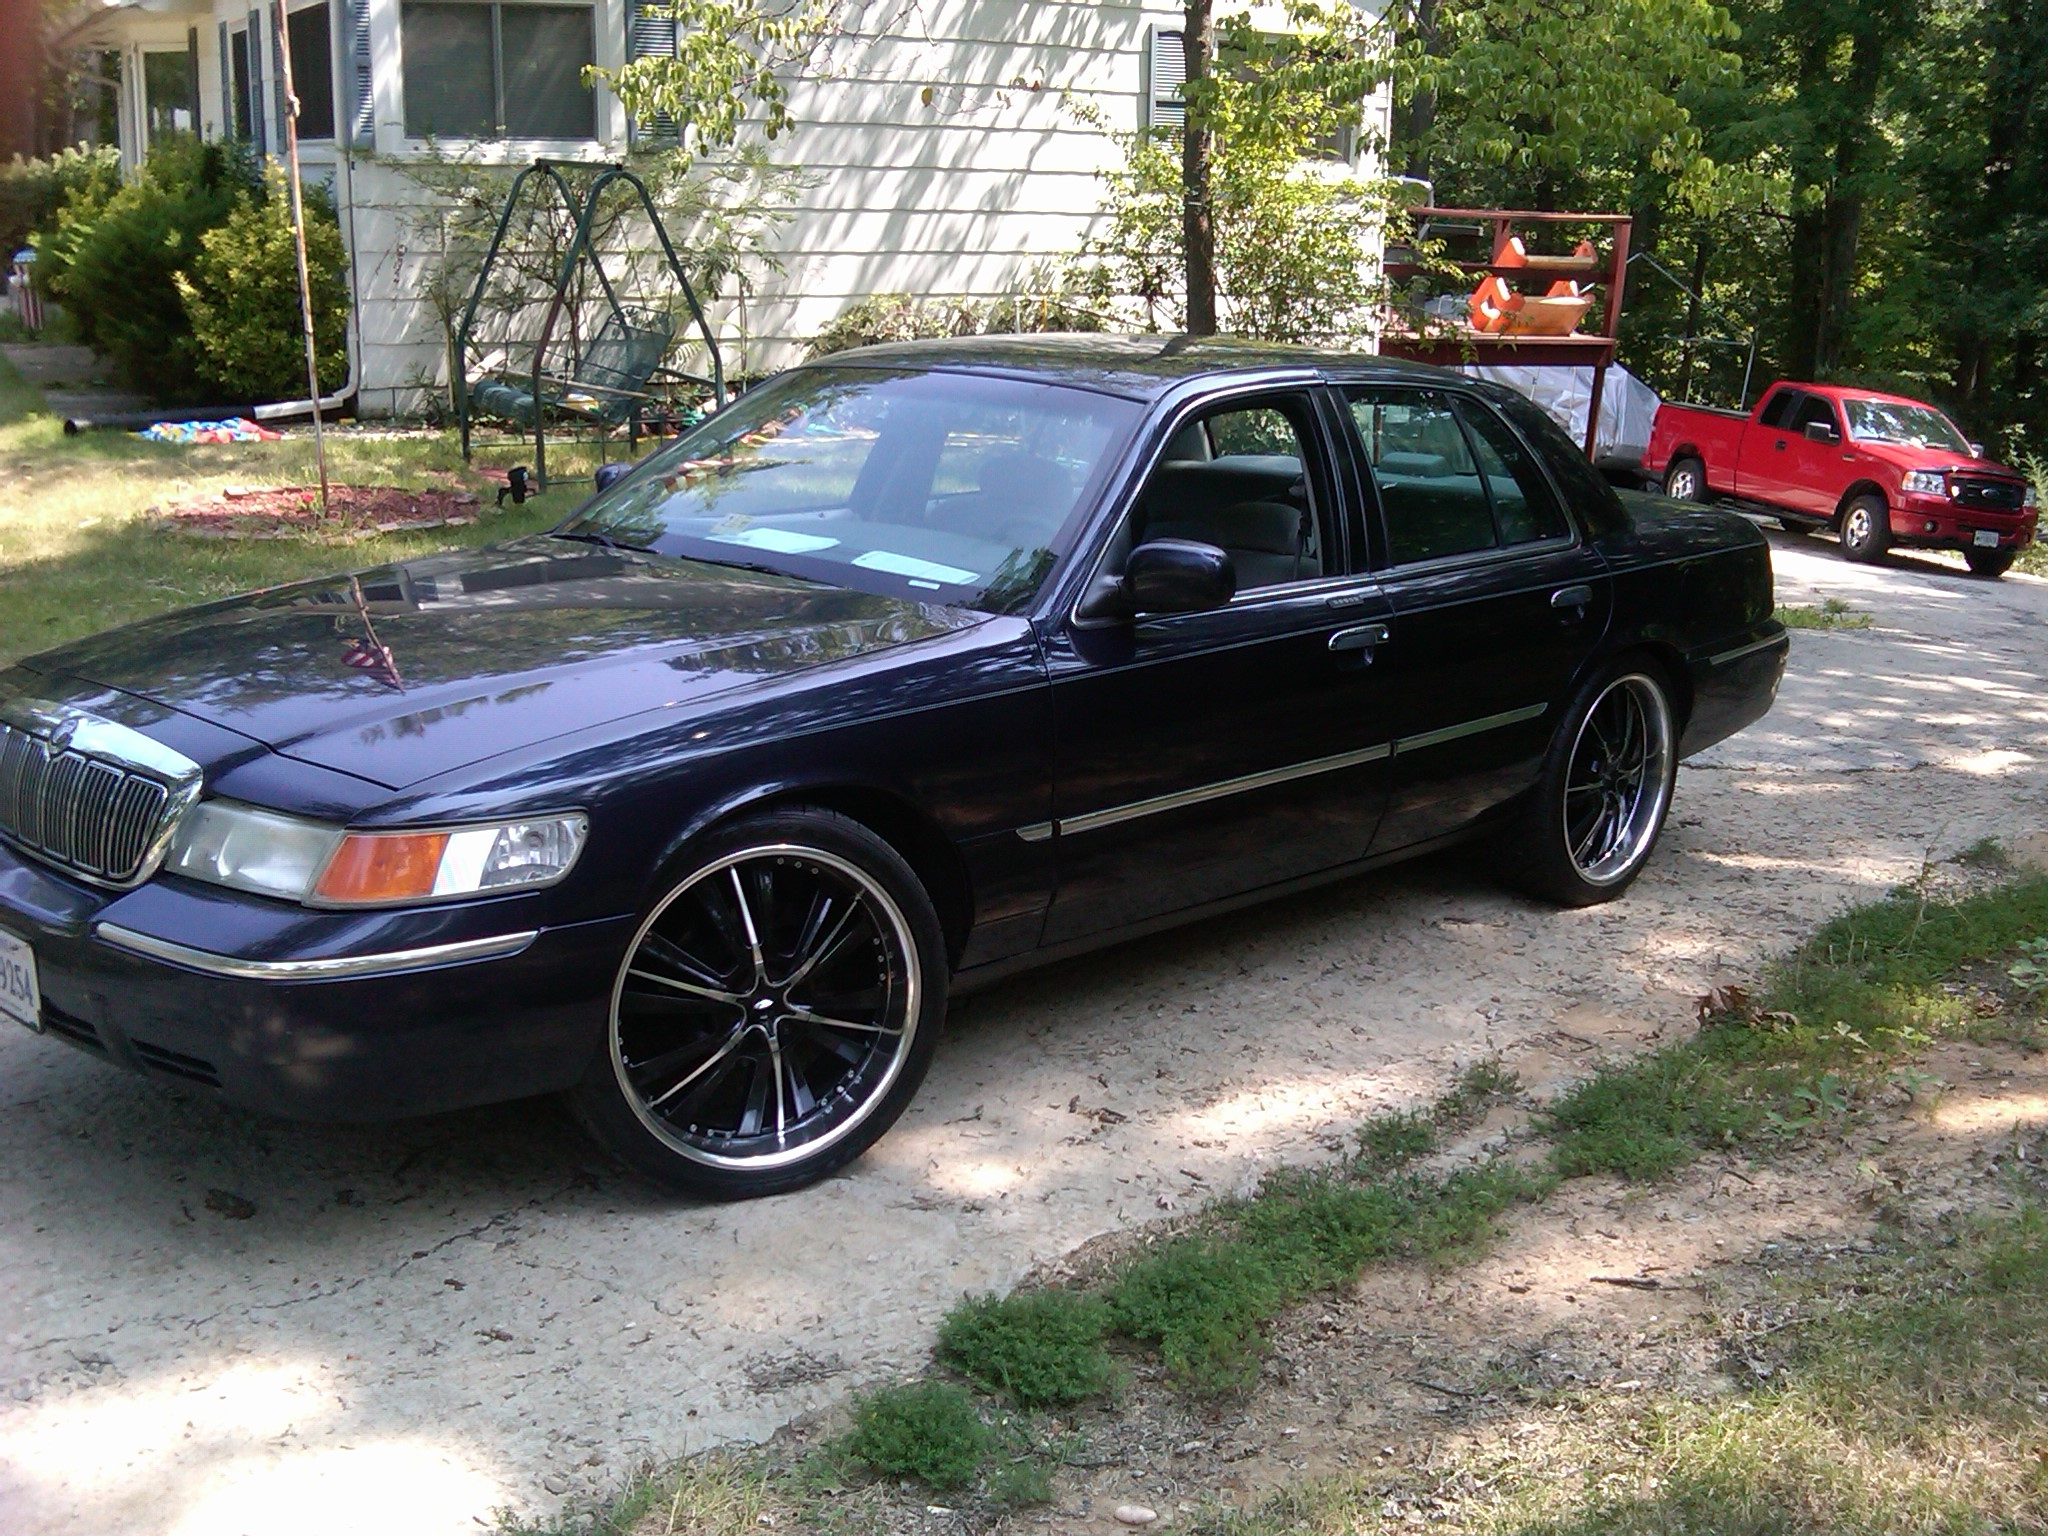 ffwhiteboy 2001 mercury grand marquisls sedan 4d specs photos modification info at cardomain cardomain